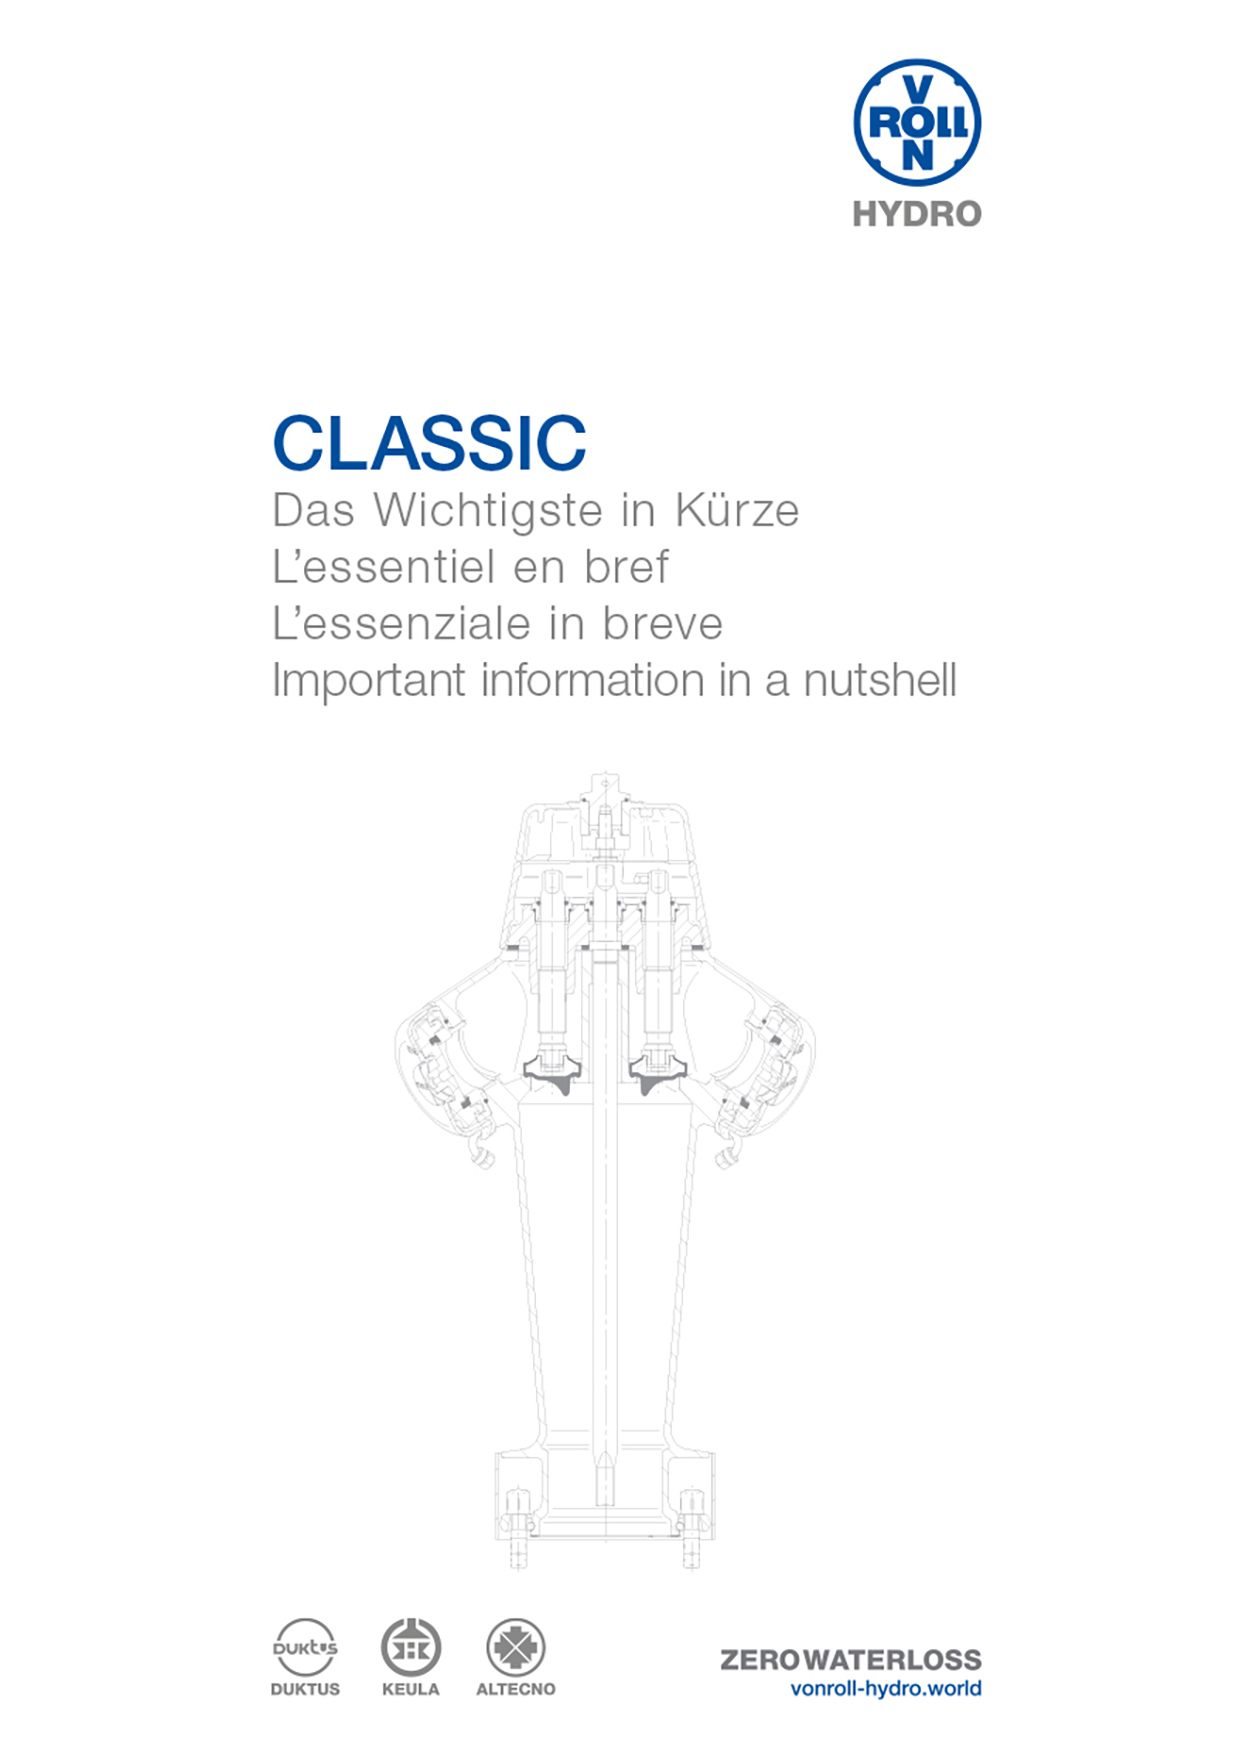 Download the checklist CLASSIC as a PDF